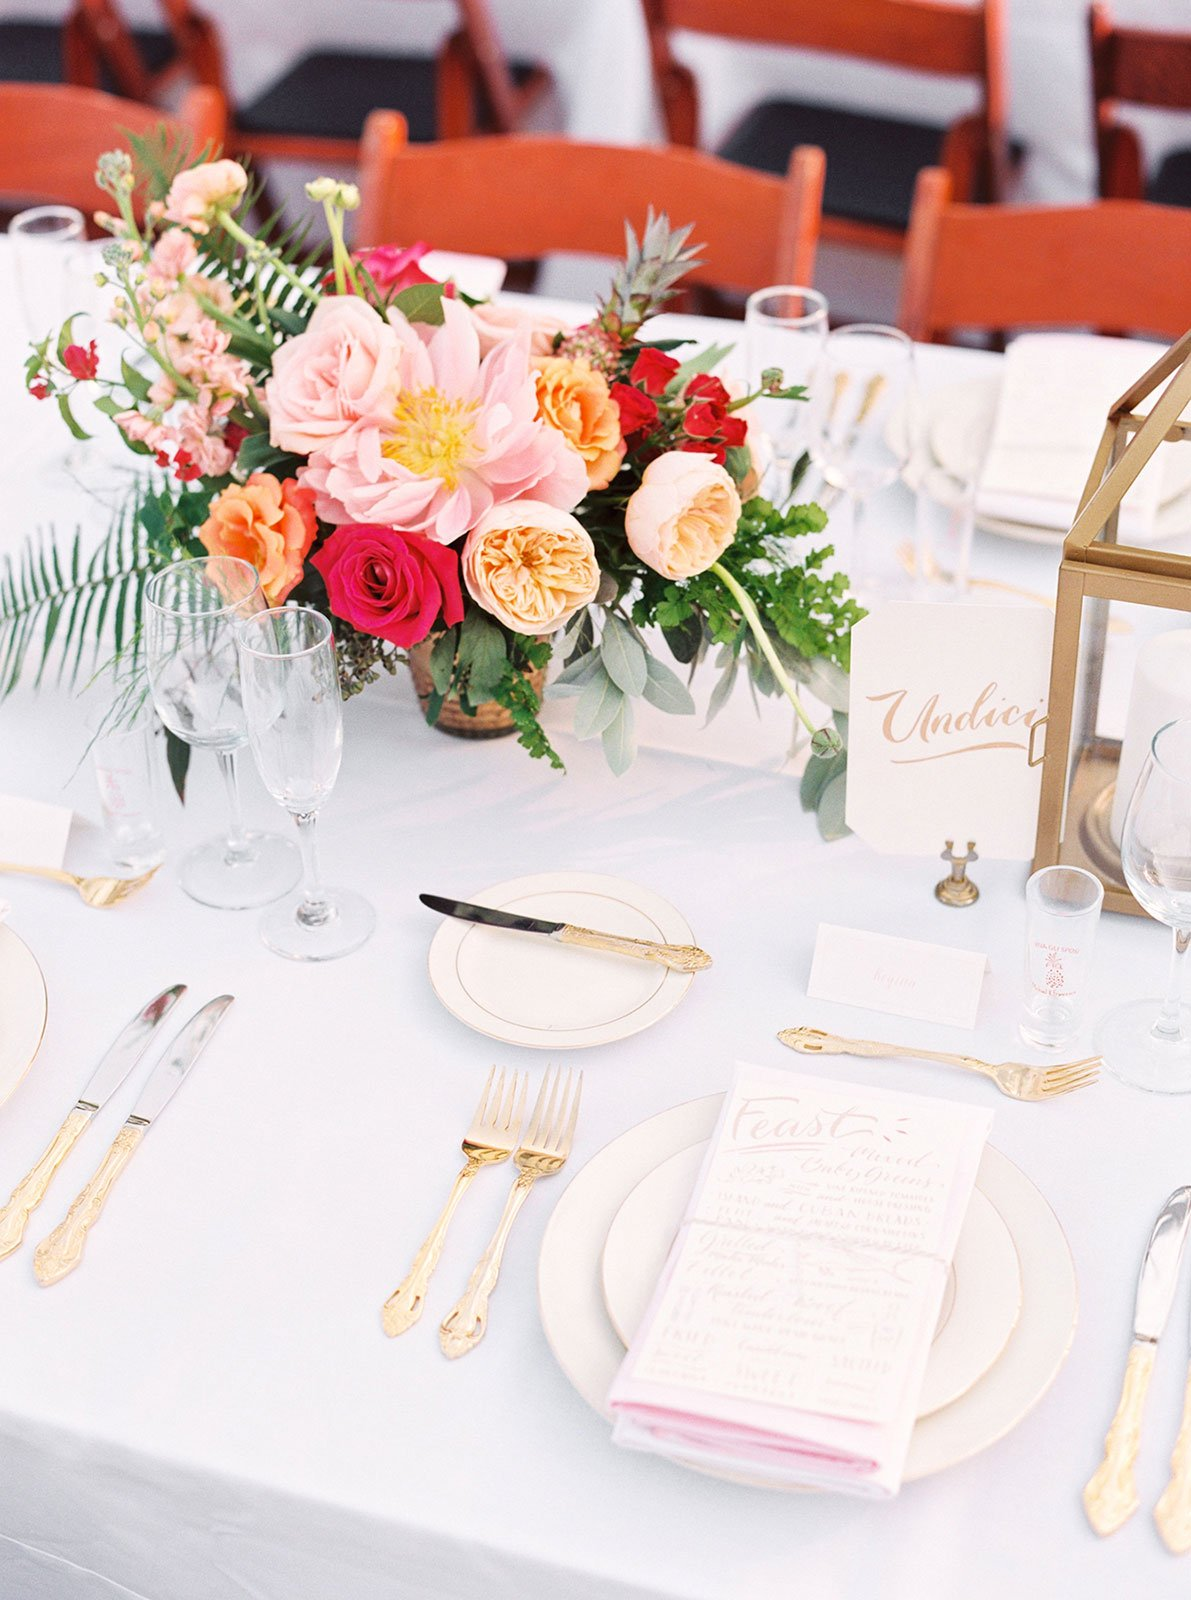 Family-style tables were set with white linens, pink ombre napkins and gold silverware at this destination wedding in Islamorada, FL